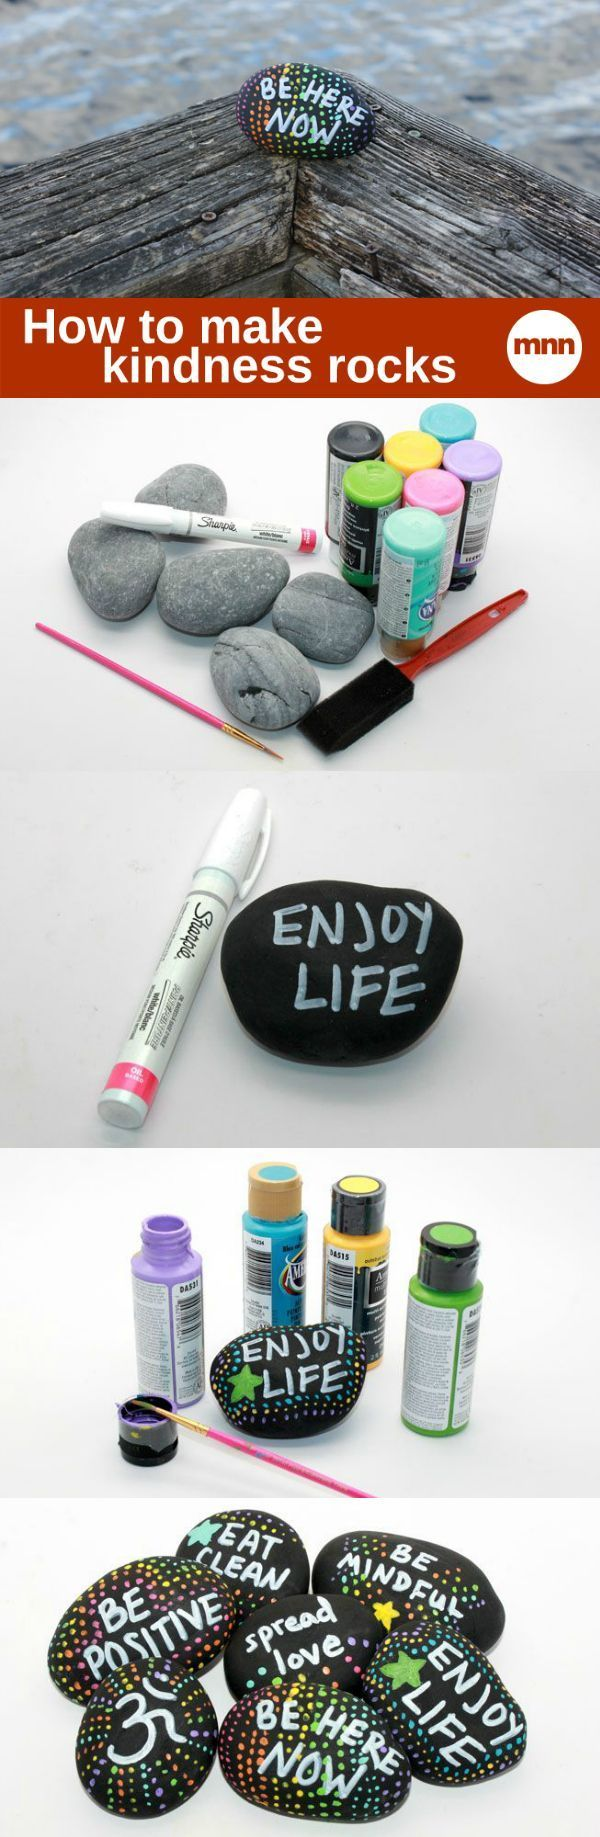 DIY Kindness Rocks. Here's an idea for sending love into the universe without spending a lot of money!